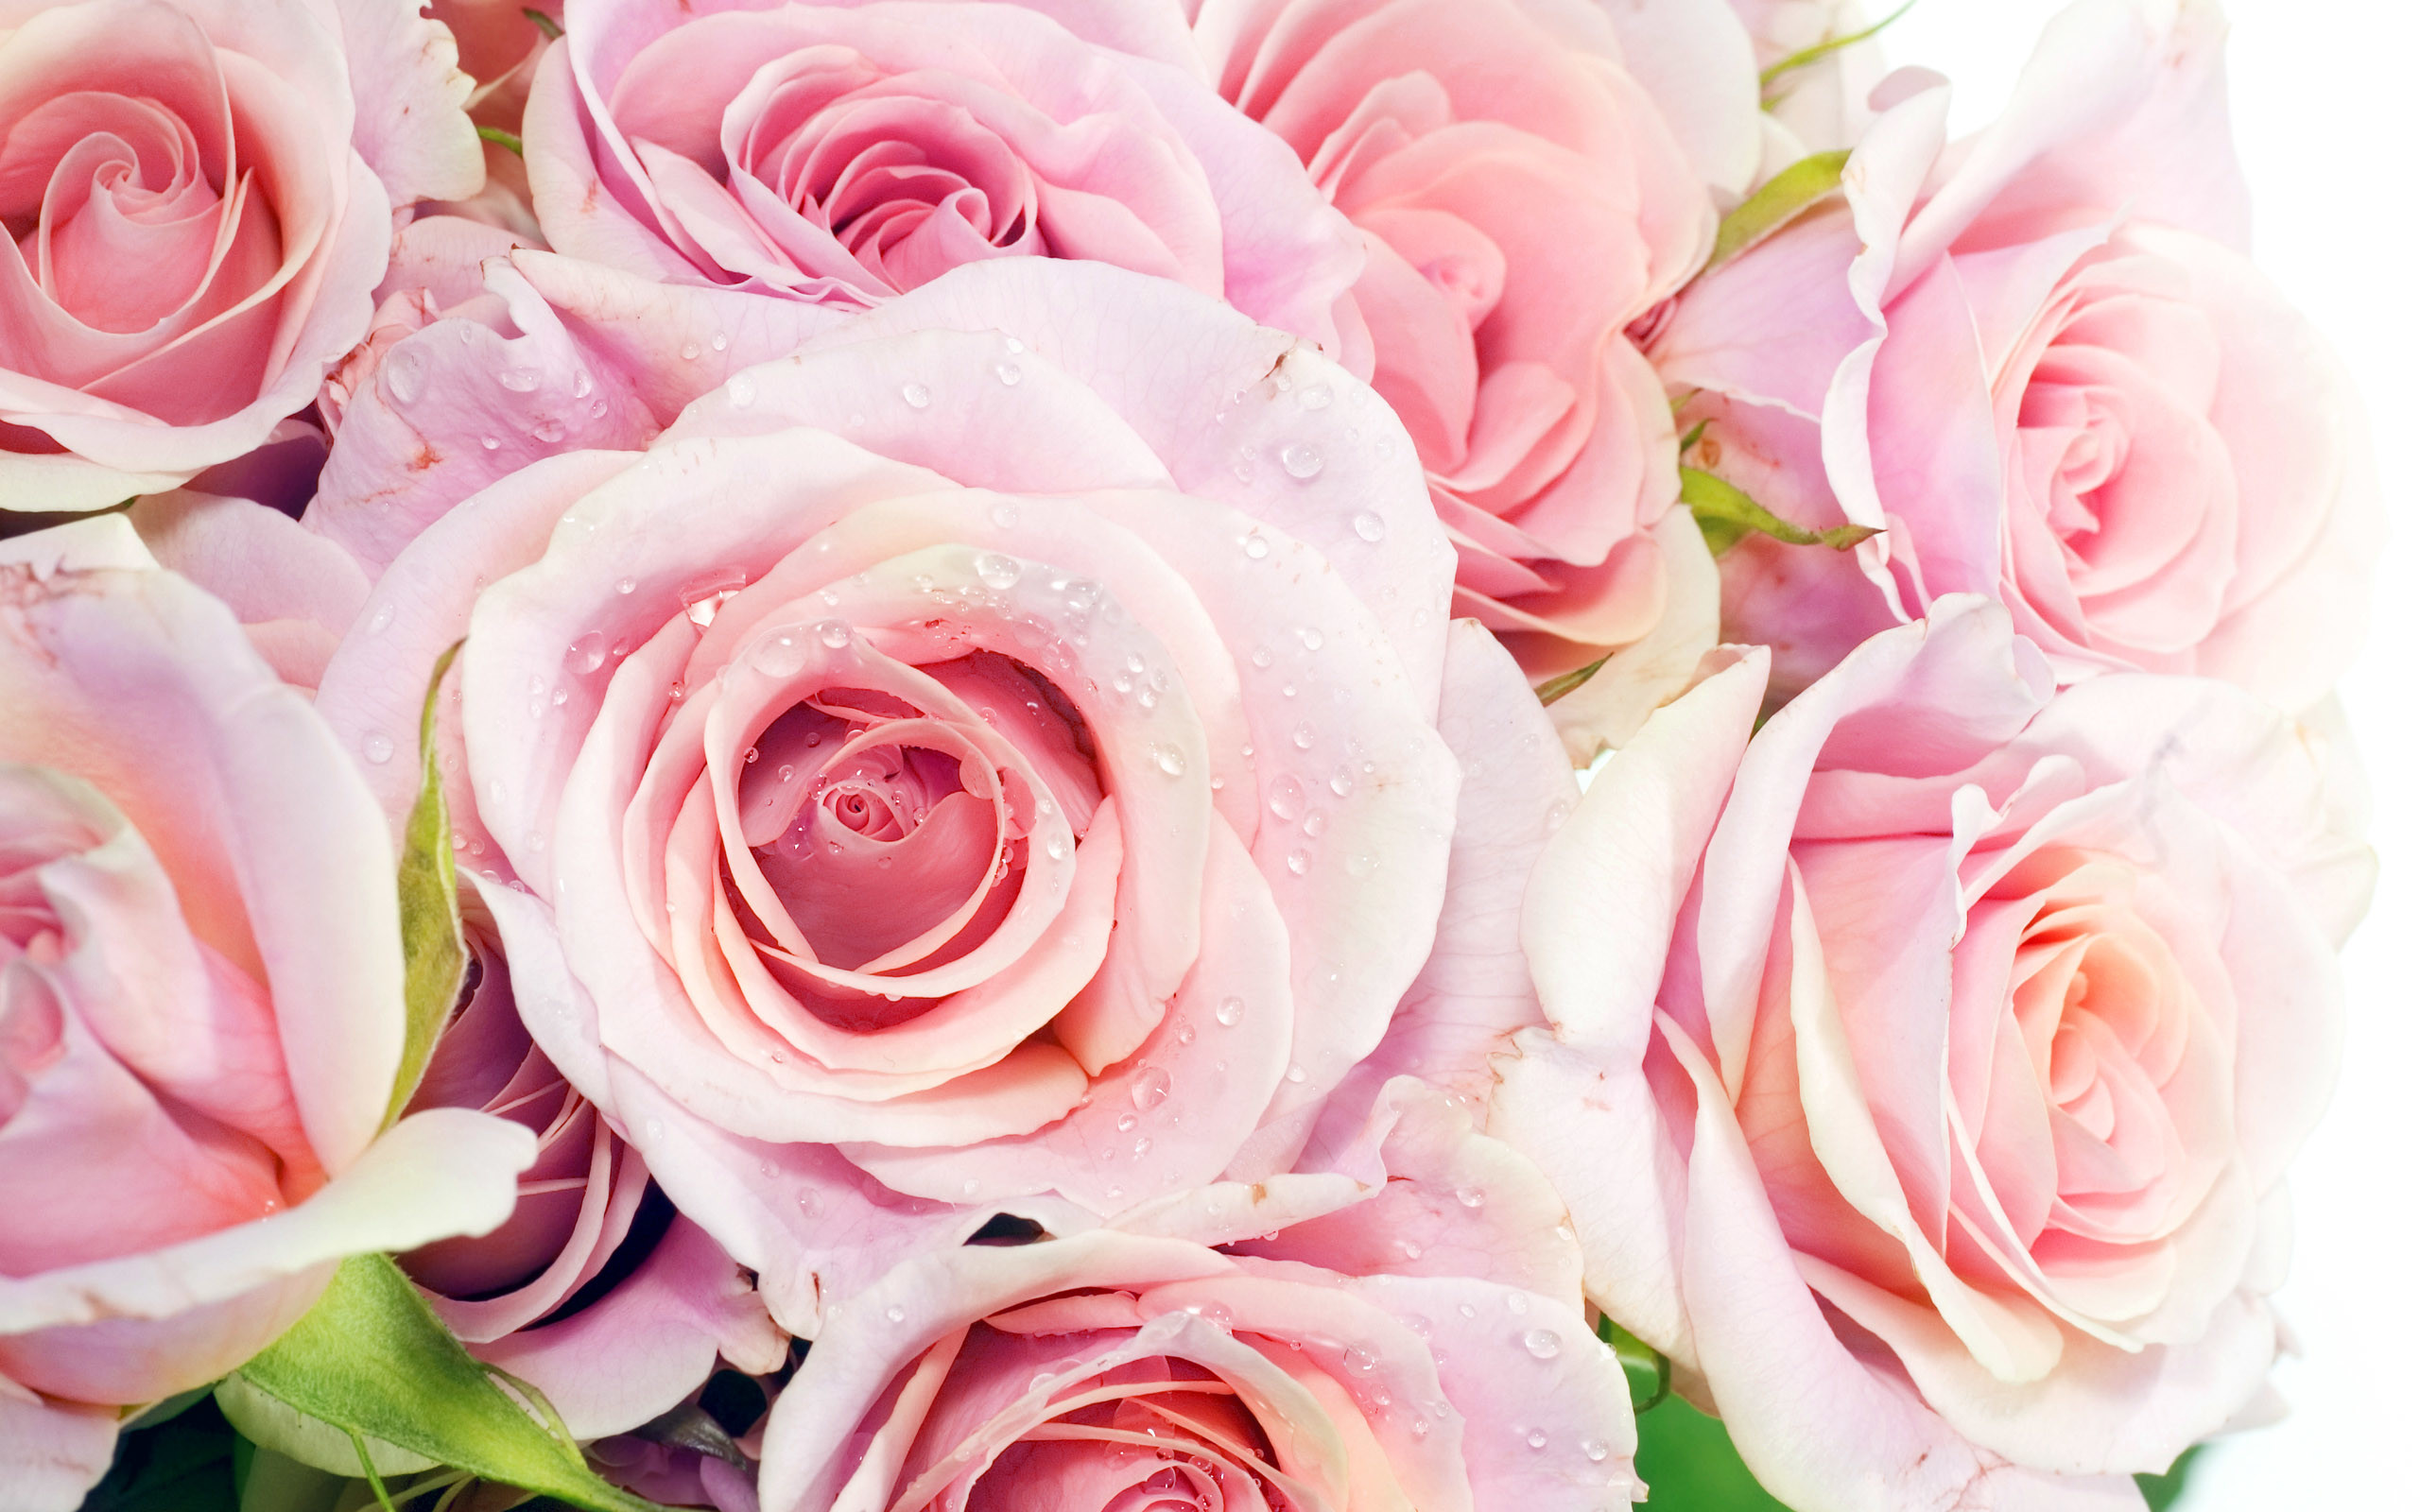 2560x1600 HD Wallpaper and background photos of Pretty Pink Roses Wallpaper for fans  of Pink (Color) images.